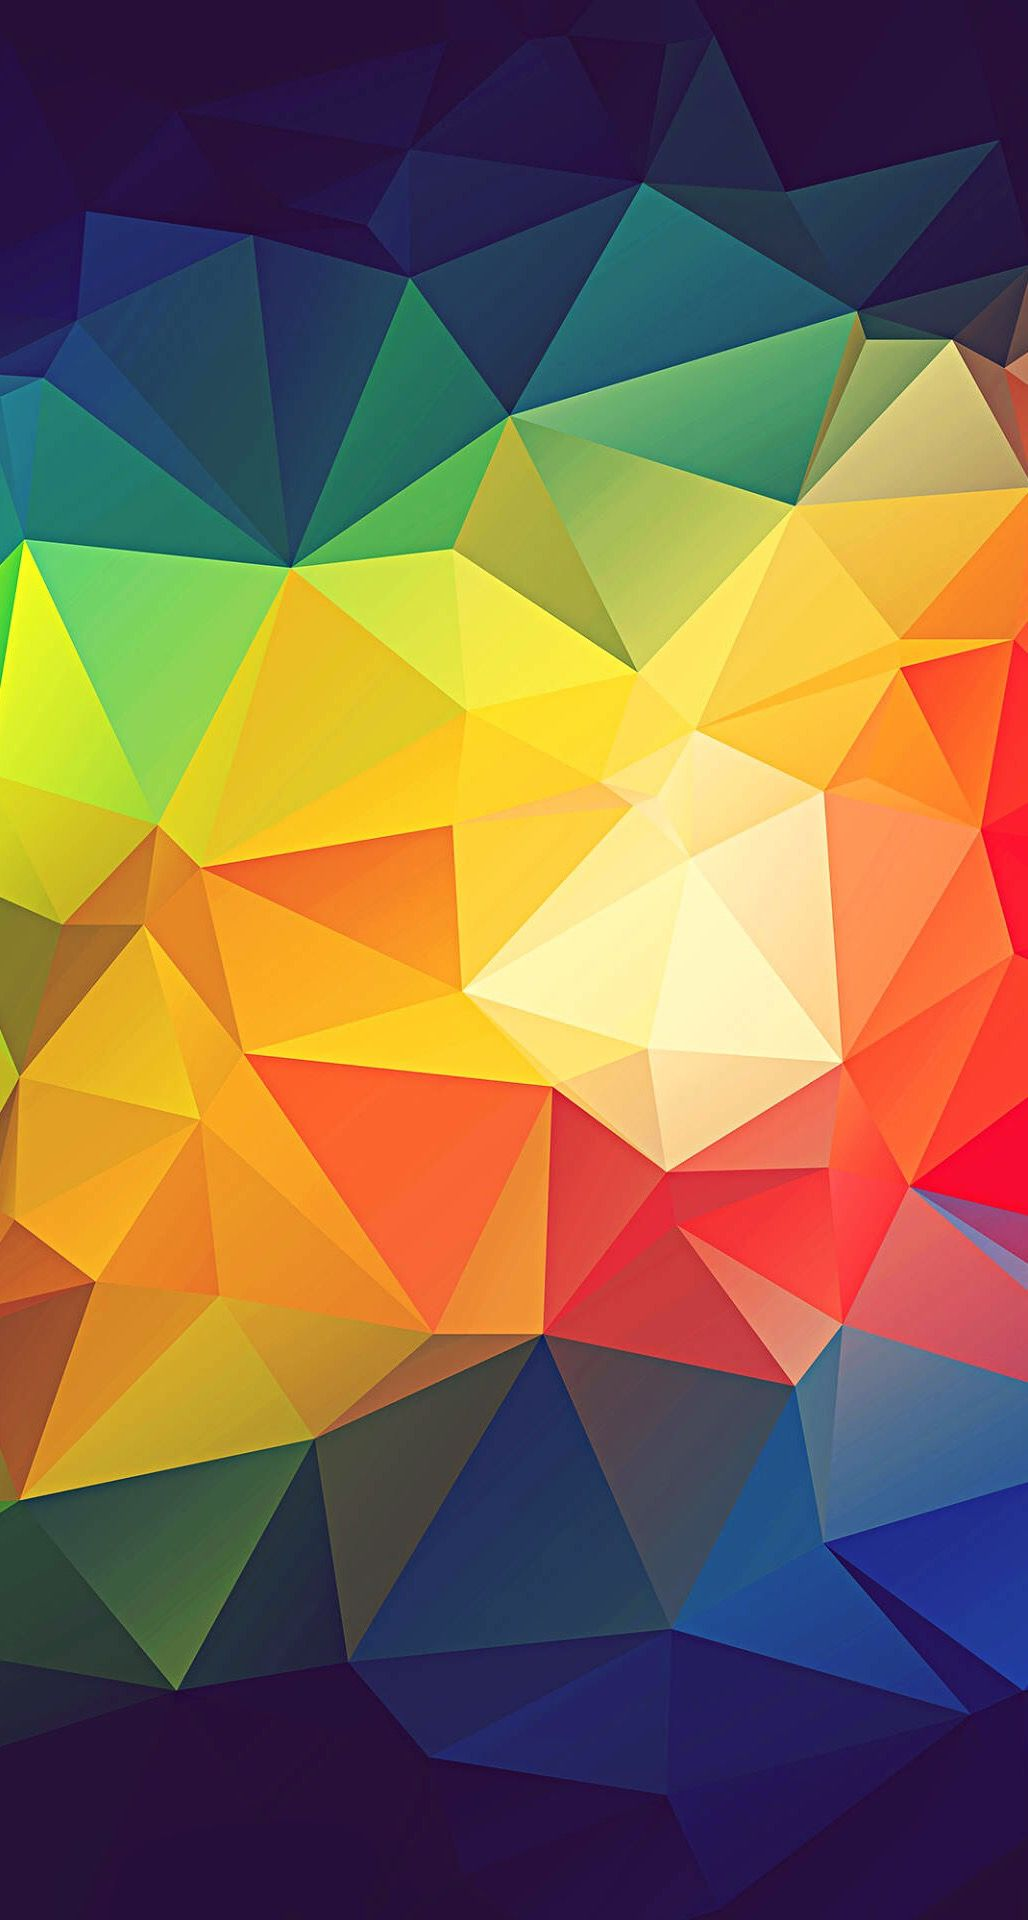 60 Clever Abstract Iphone Wallpapers For Art Lovers Geometric